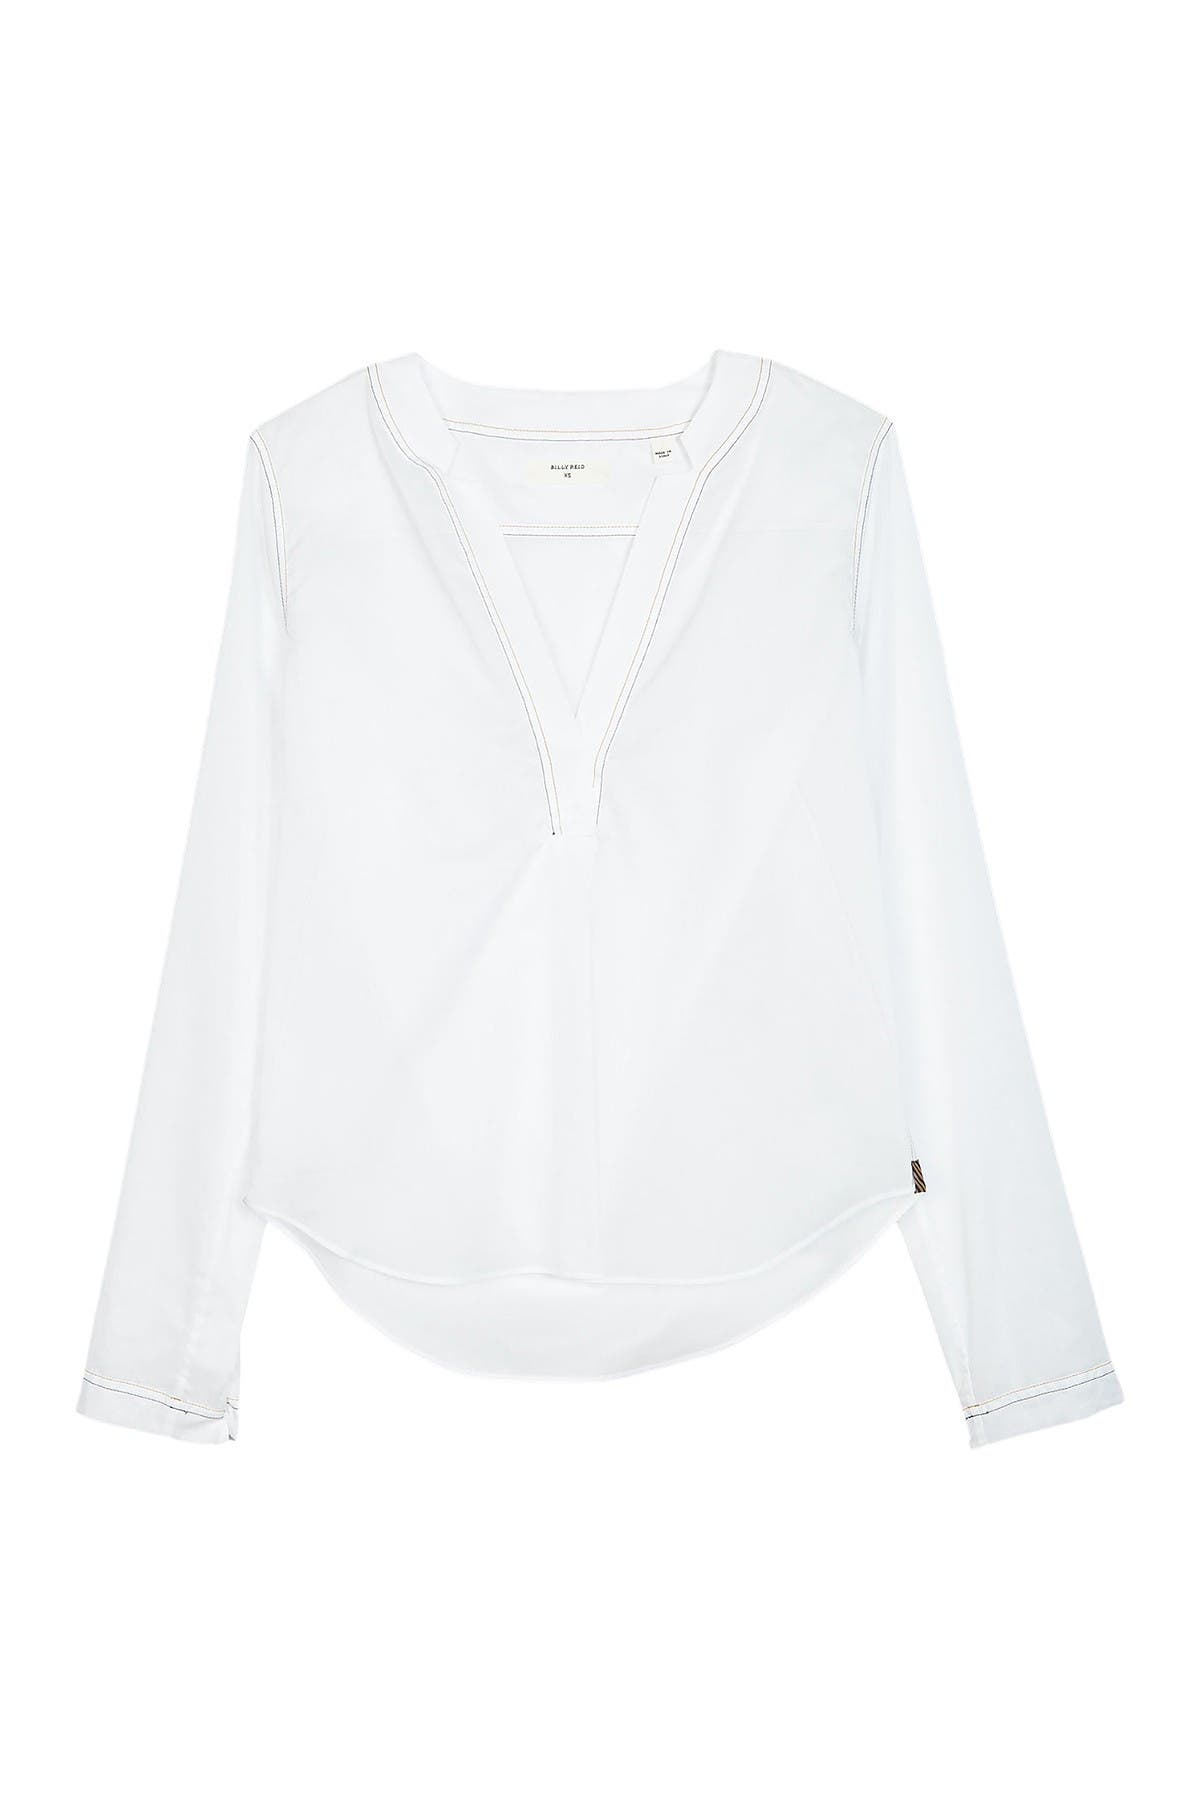 Image of Billy Reid Camilla Blouse